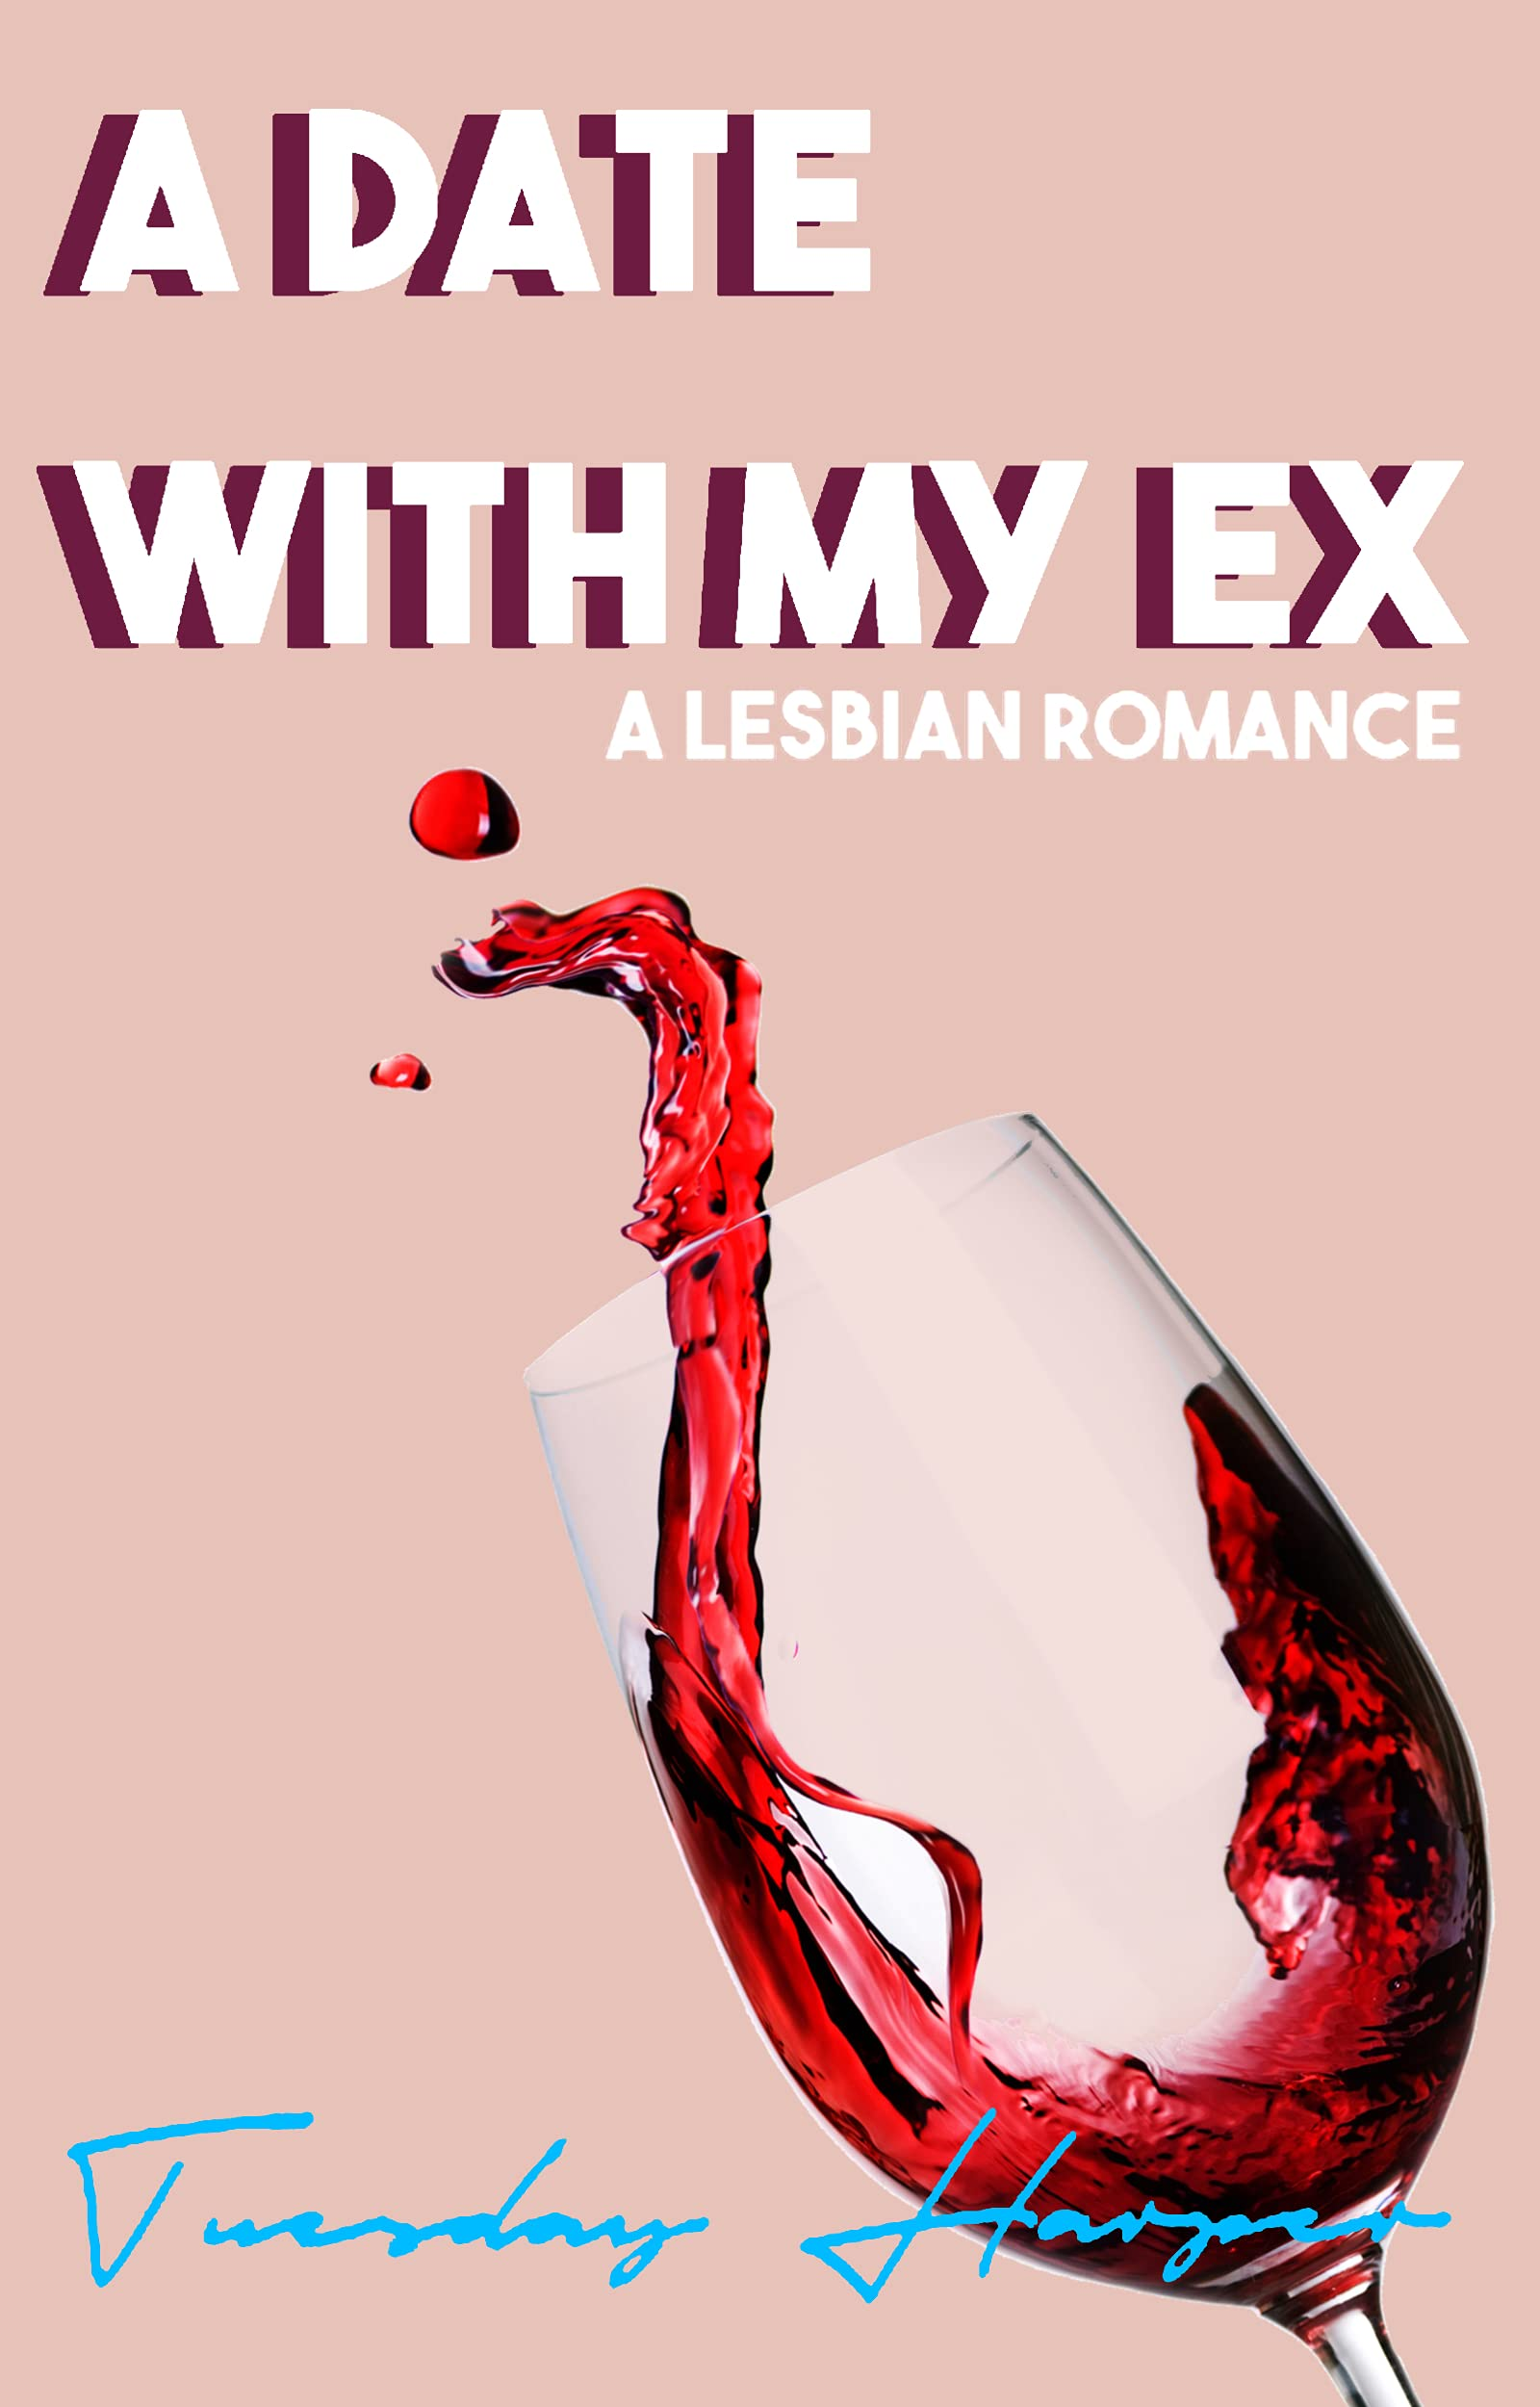 A Date With My Ex: A Lesbian Romance